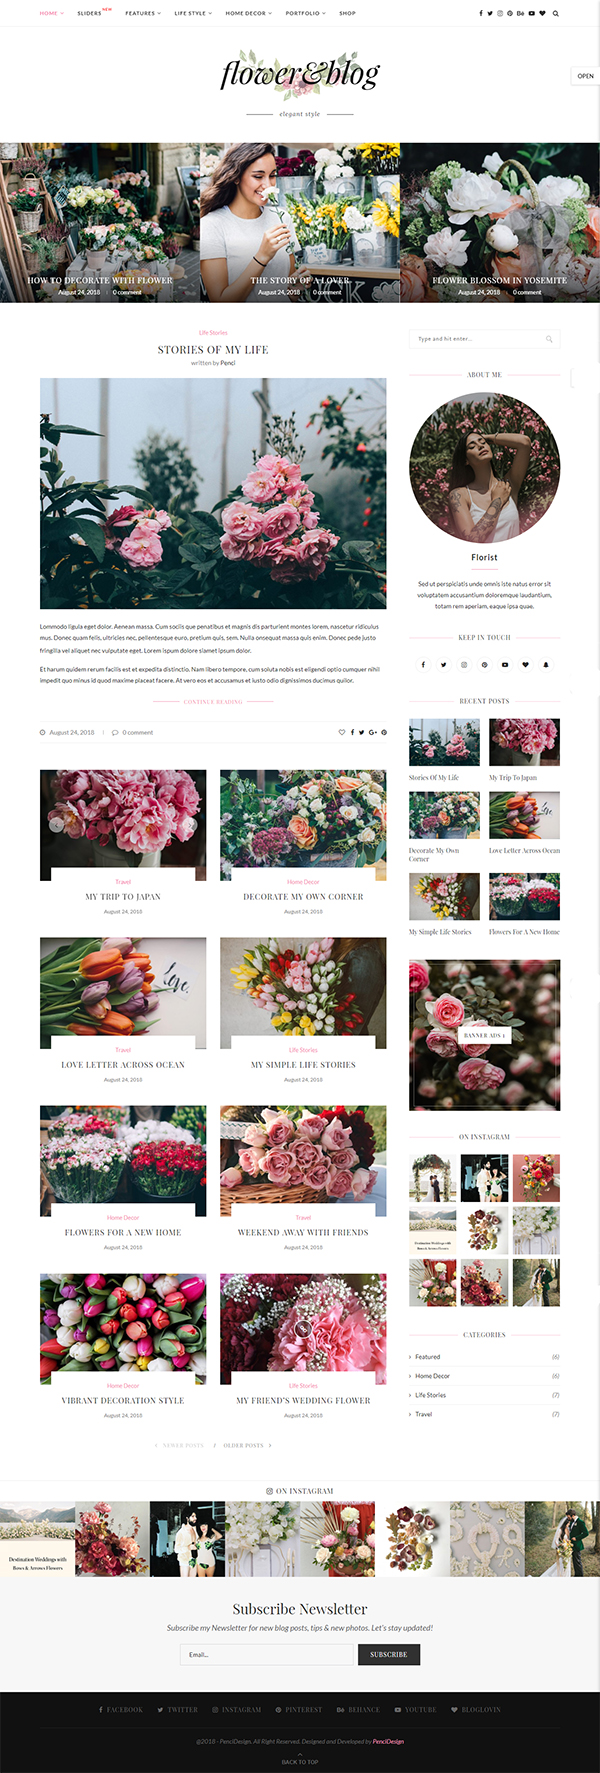 Soledad - Multi-Concept Blog/Magazine/News AMP WordPress Theme